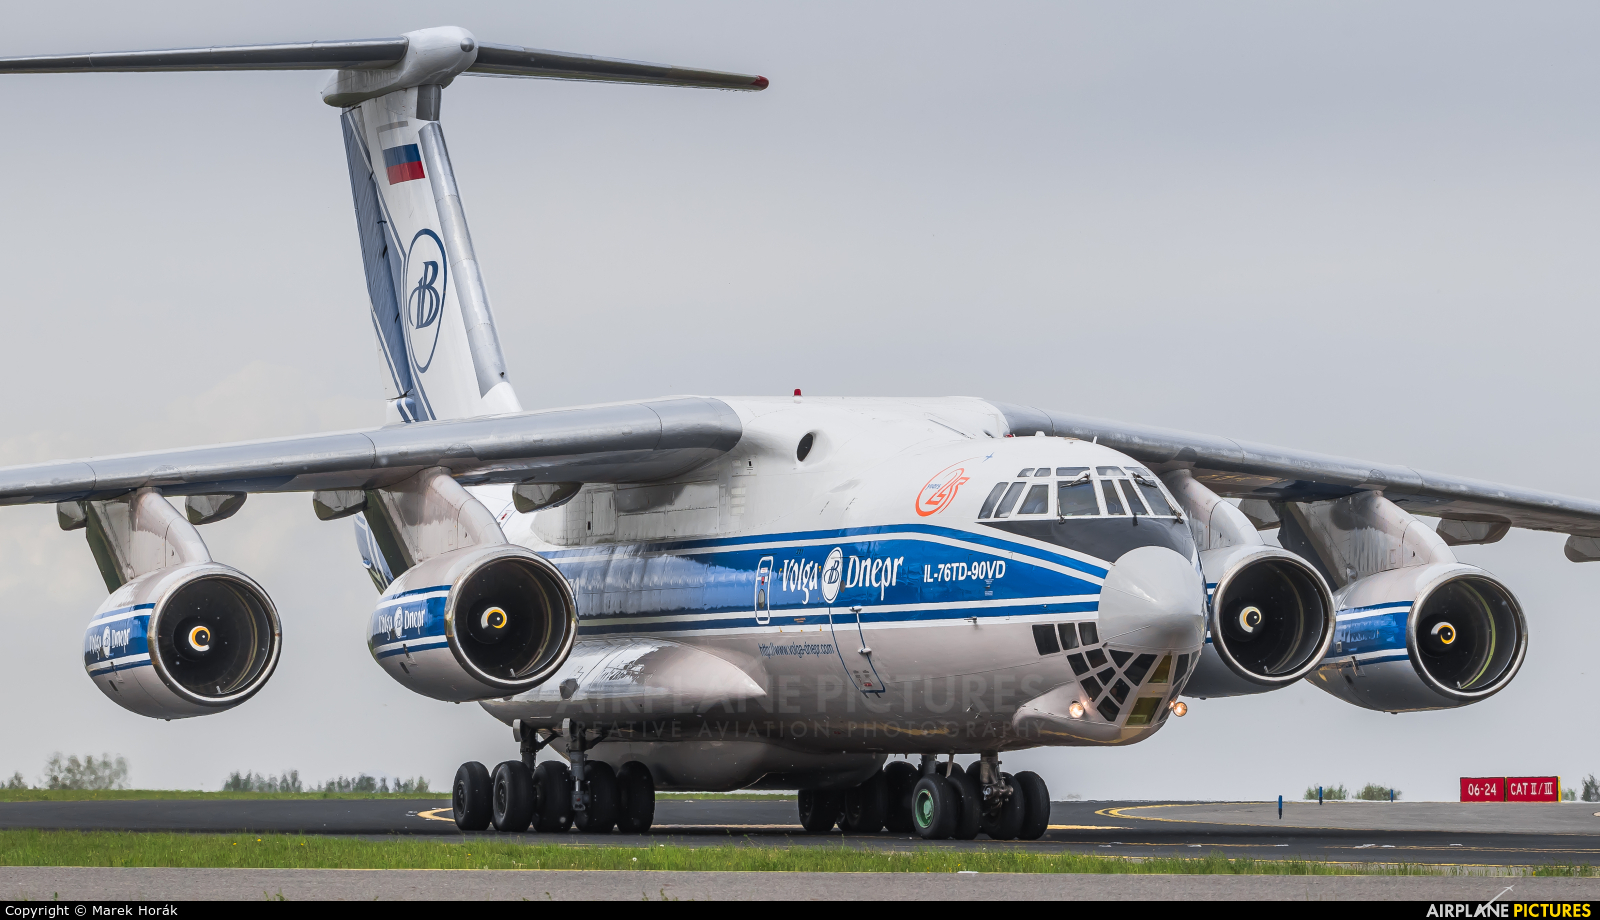 Volga Dnepr Airlines RA-76952 aircraft at Prague - Václav Havel